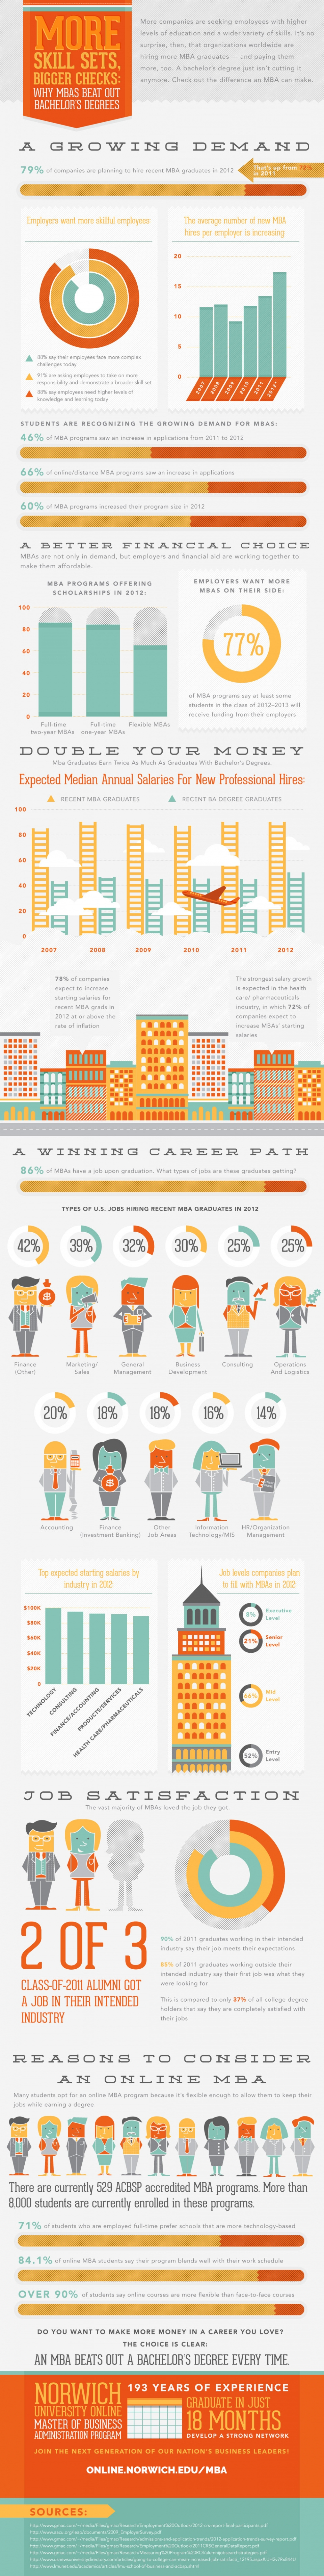 demand for MBA graduate infographic image